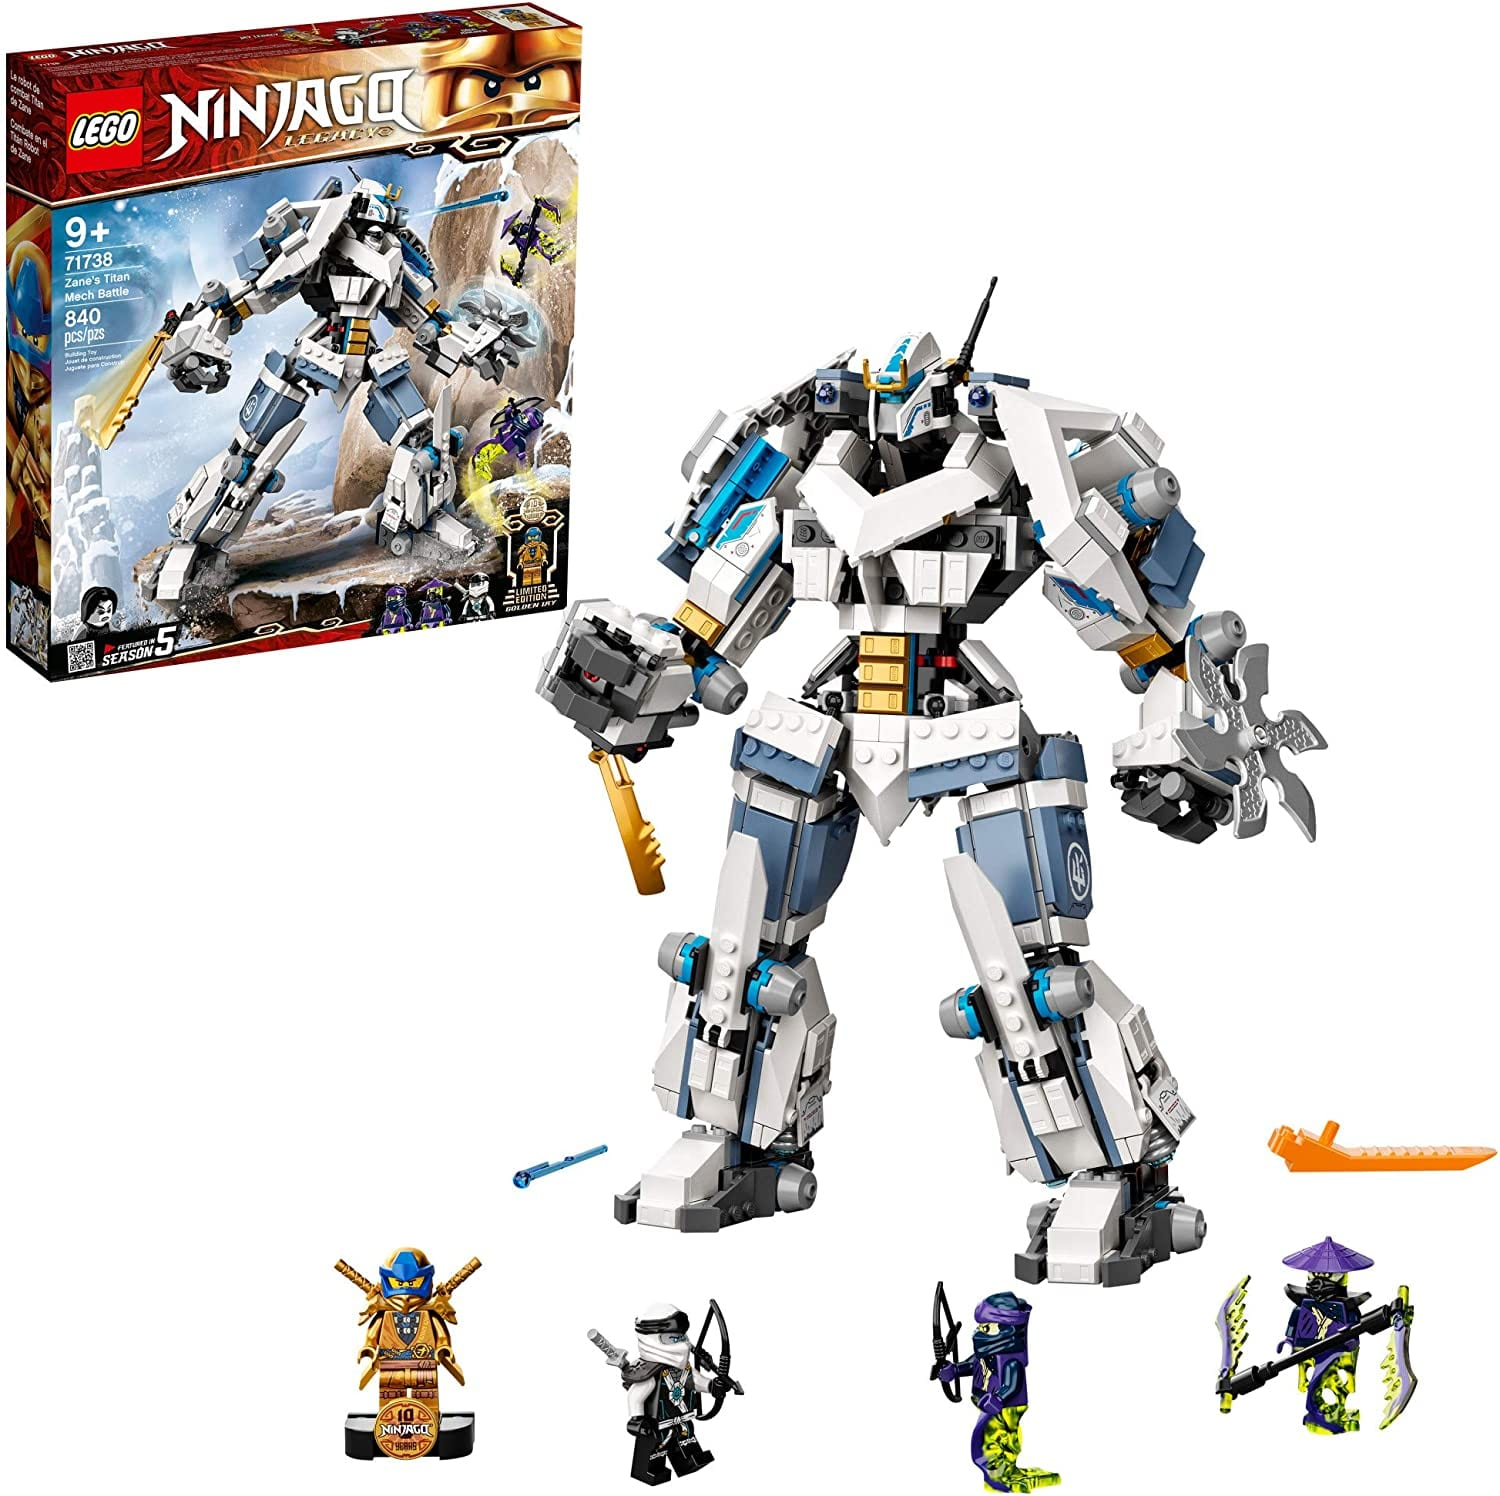 LEGO NINJAGO Zane's Titan Mech 71738 with limited edition Golden Jay 840 pieces for $47.99